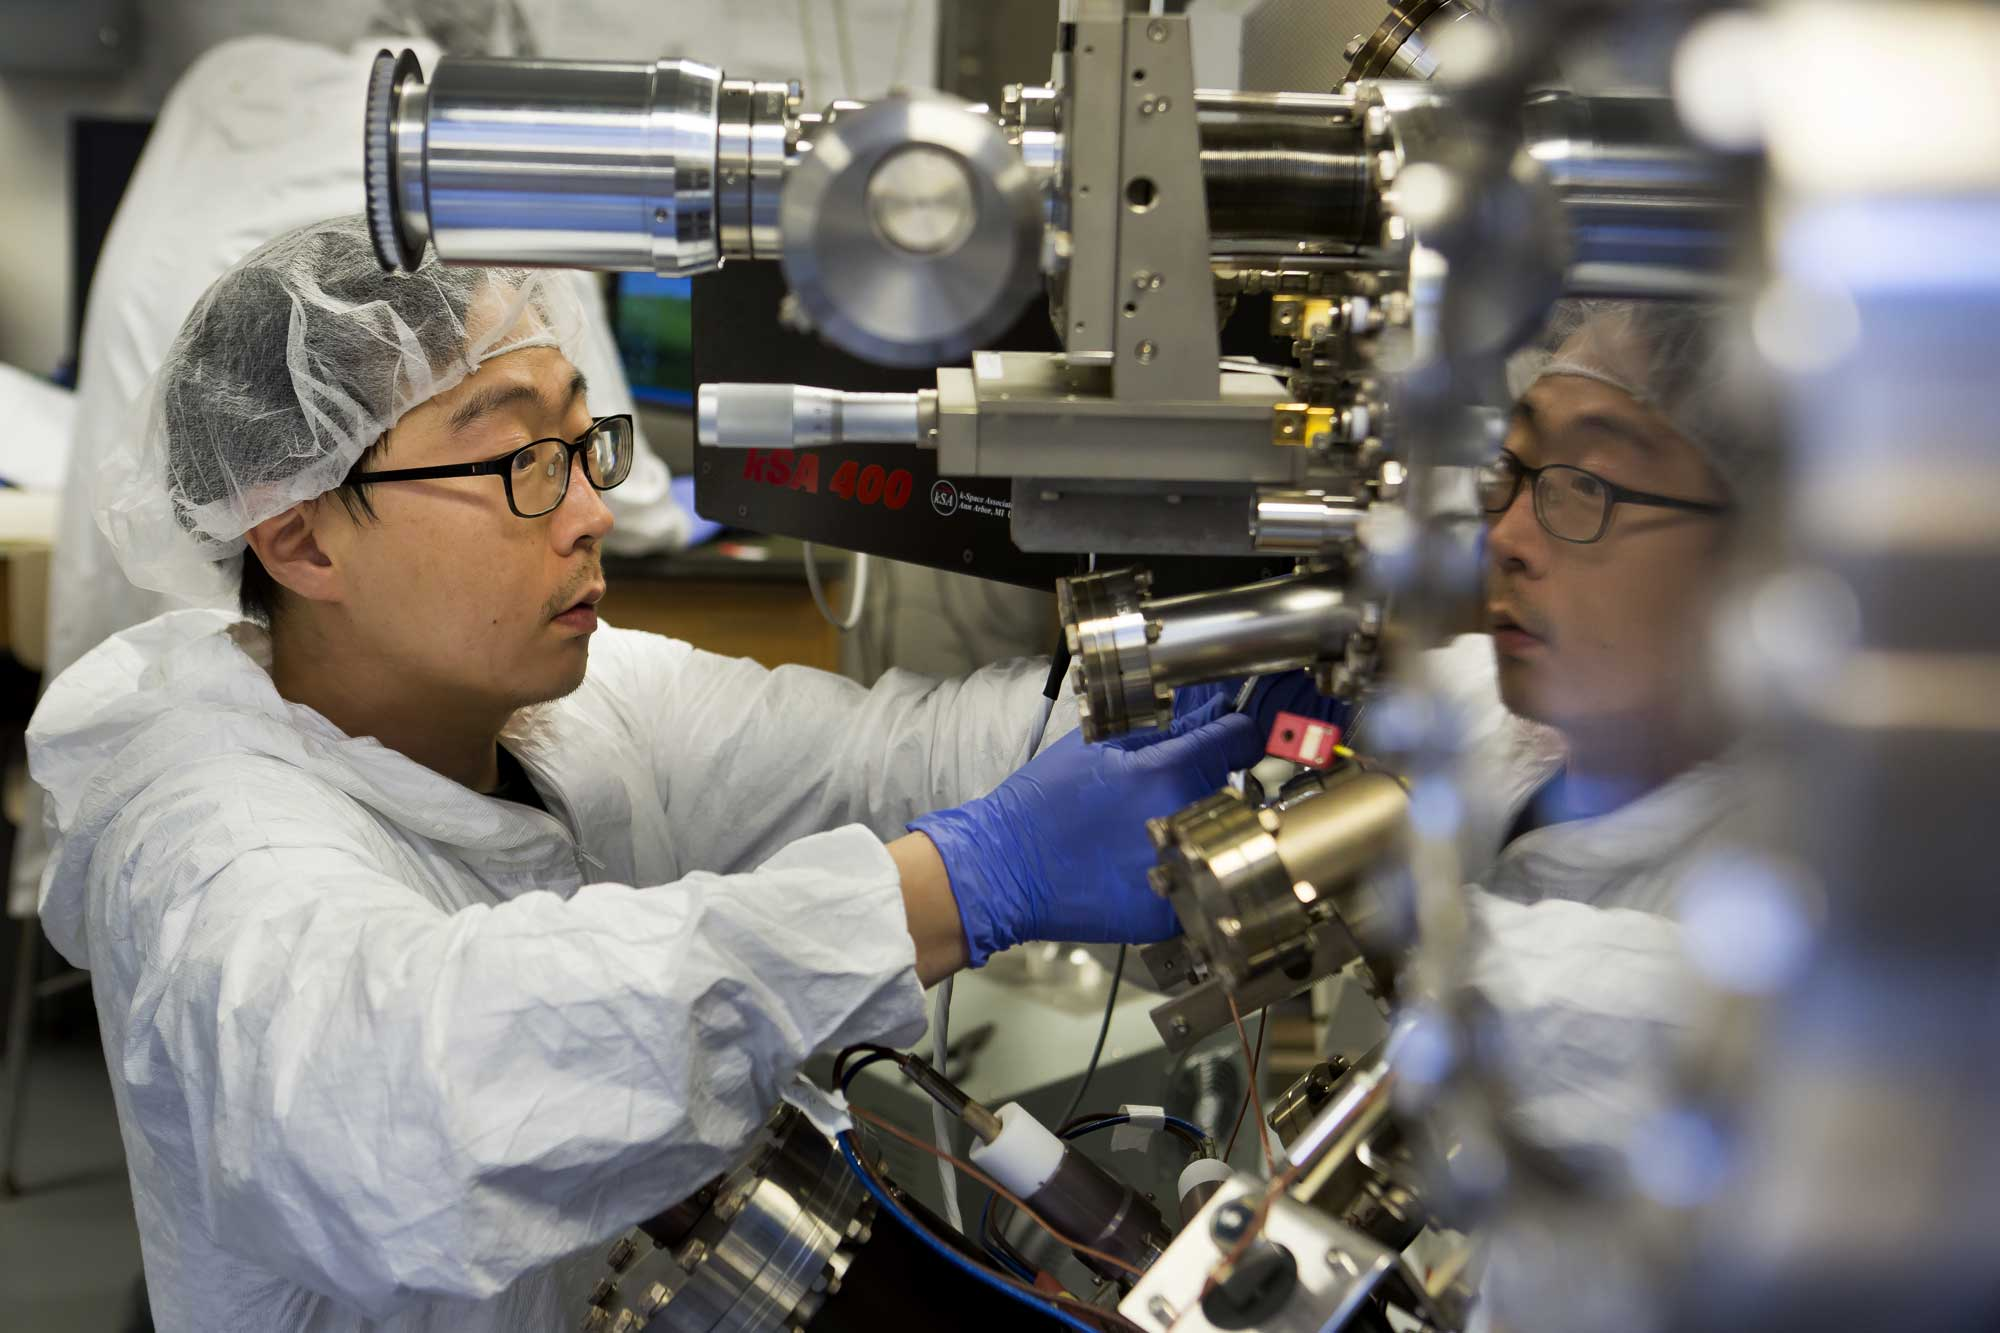 Former materials science PhD student Sunyeol Jun prepares the molecular beam epitaxy apparatus that's used to make the nanoparticle-infused gallium nitride semiconductors. The semiconductors could boost LED efficiency by up to 50 percent, and even lead to invisibility cloaking devices. Image credit: Joseph Xu, Michigan Engineering